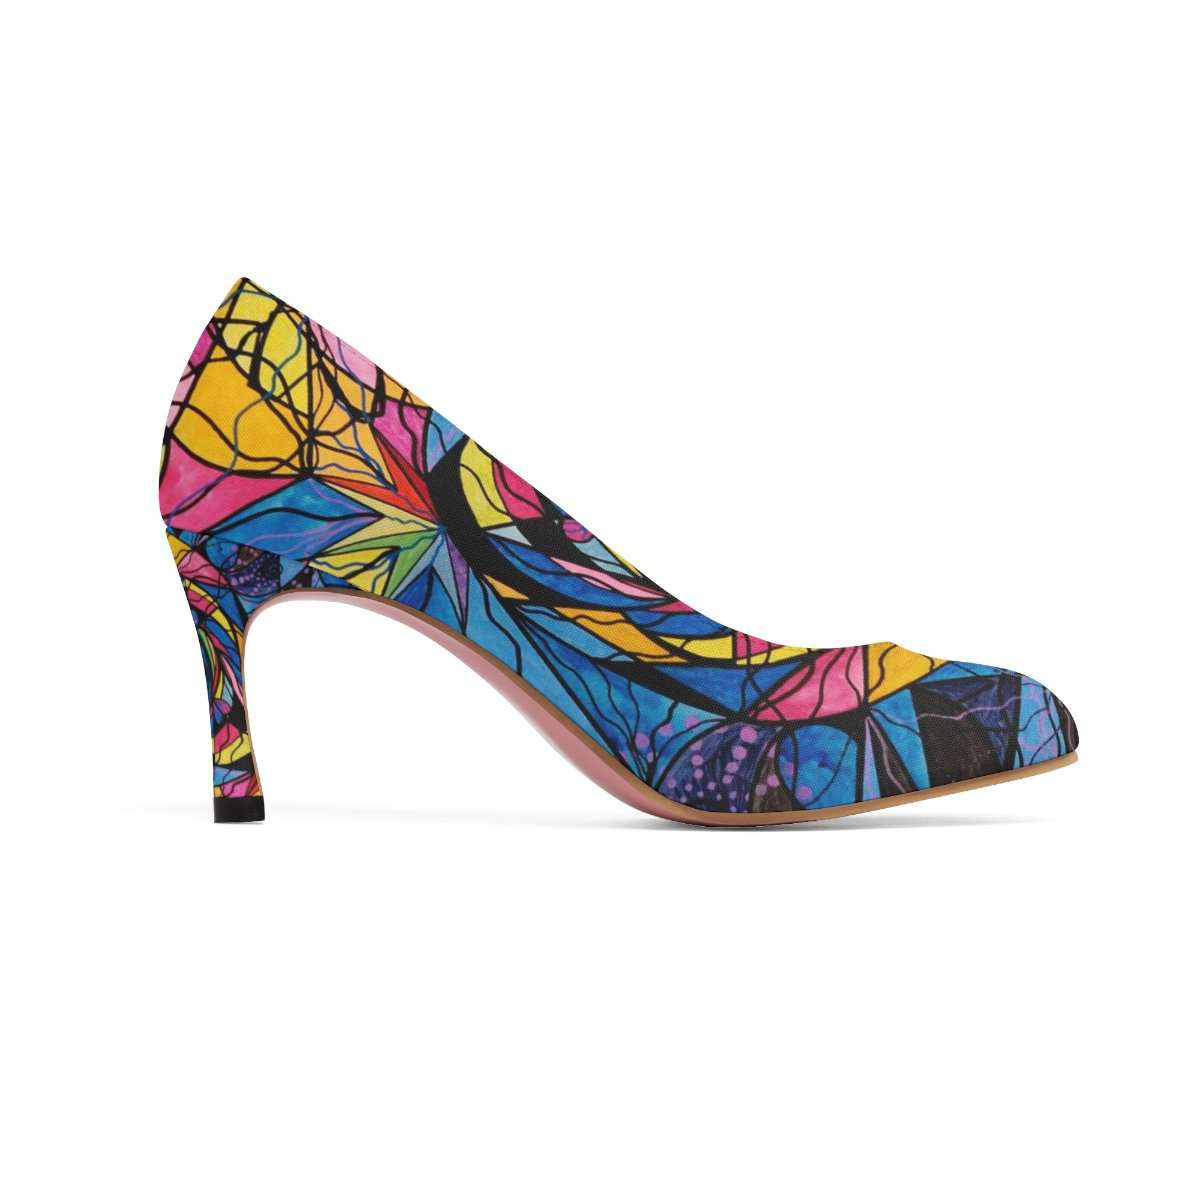 Kindred Soul - Women's High Heels